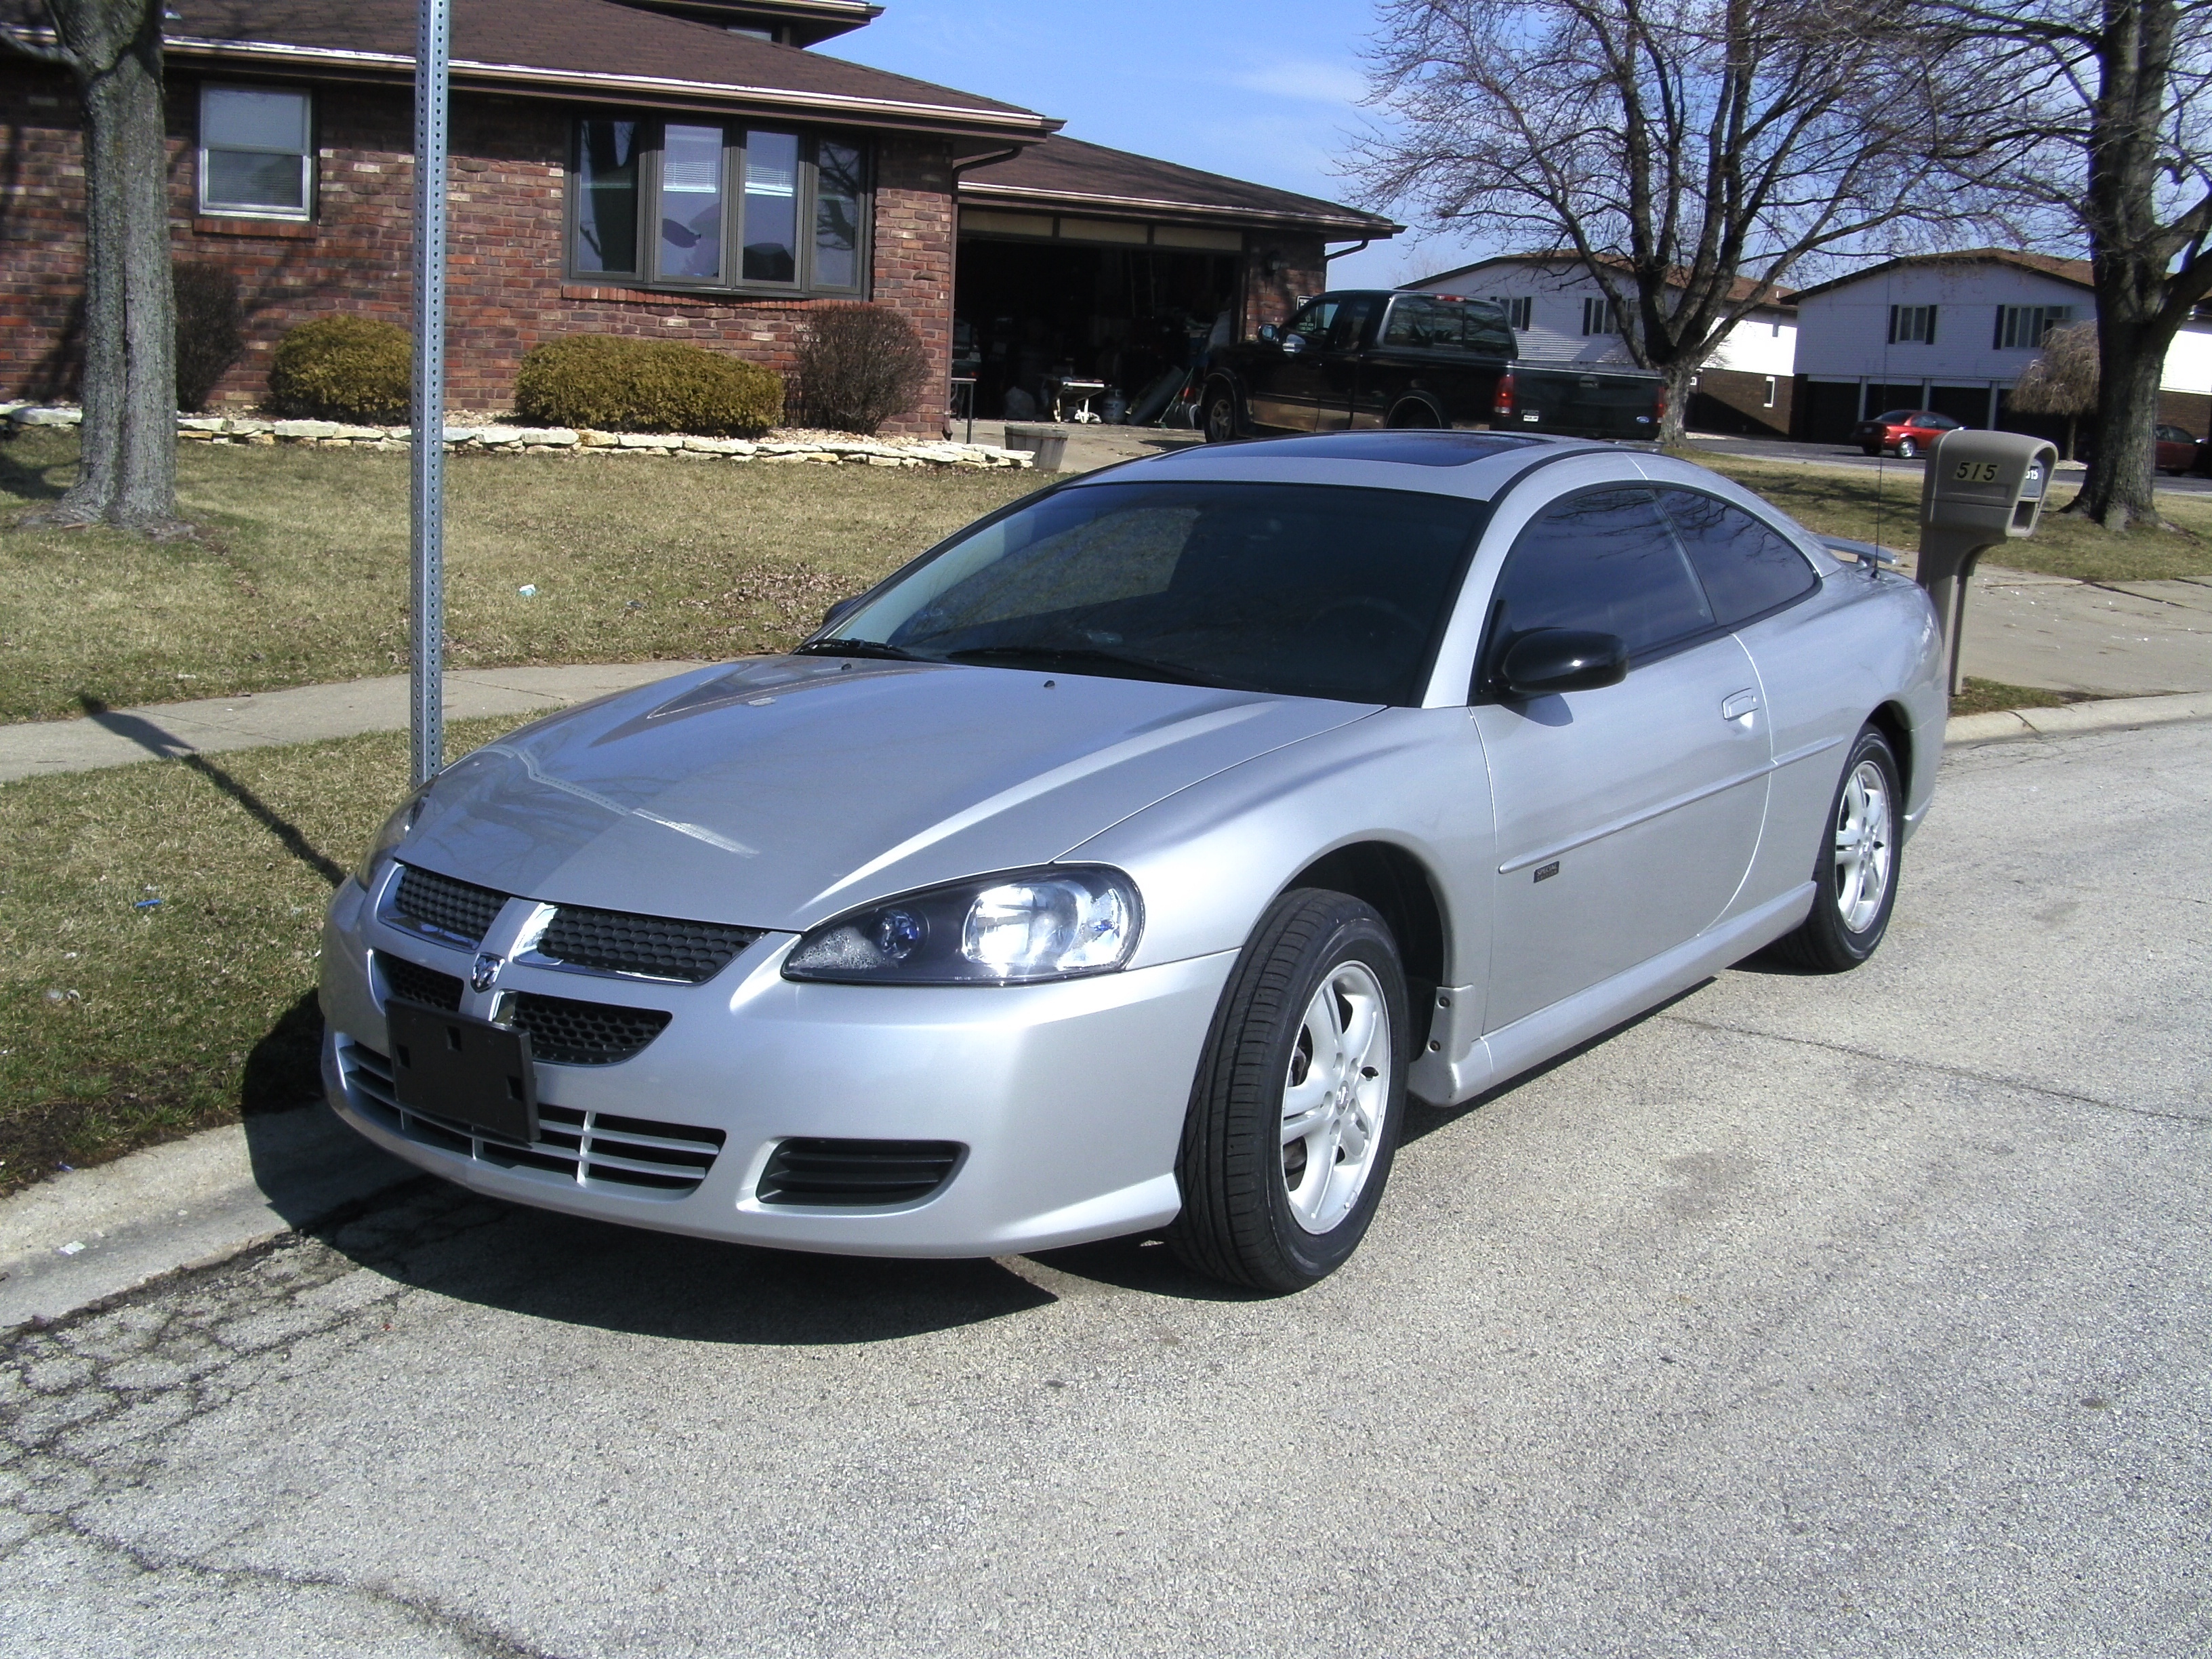 xxjohnsxtxx 2005 dodge stratus specs photos modification. Black Bedroom Furniture Sets. Home Design Ideas